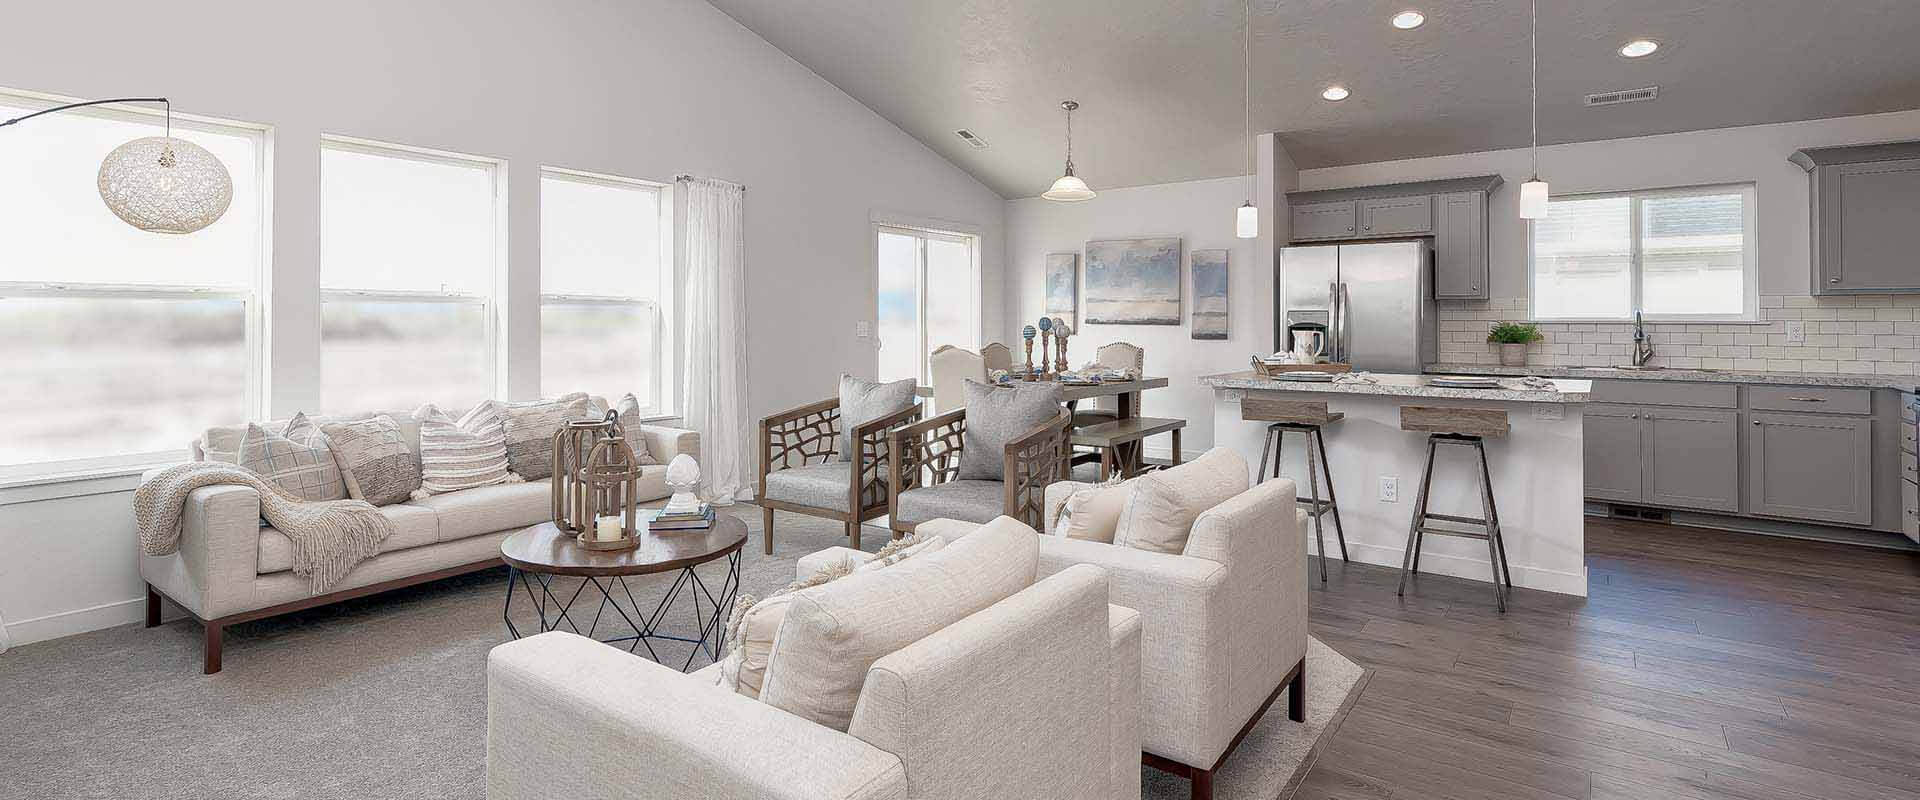 Charter-Pointe-New-Homes-and-Communities-Boise-02.jpg